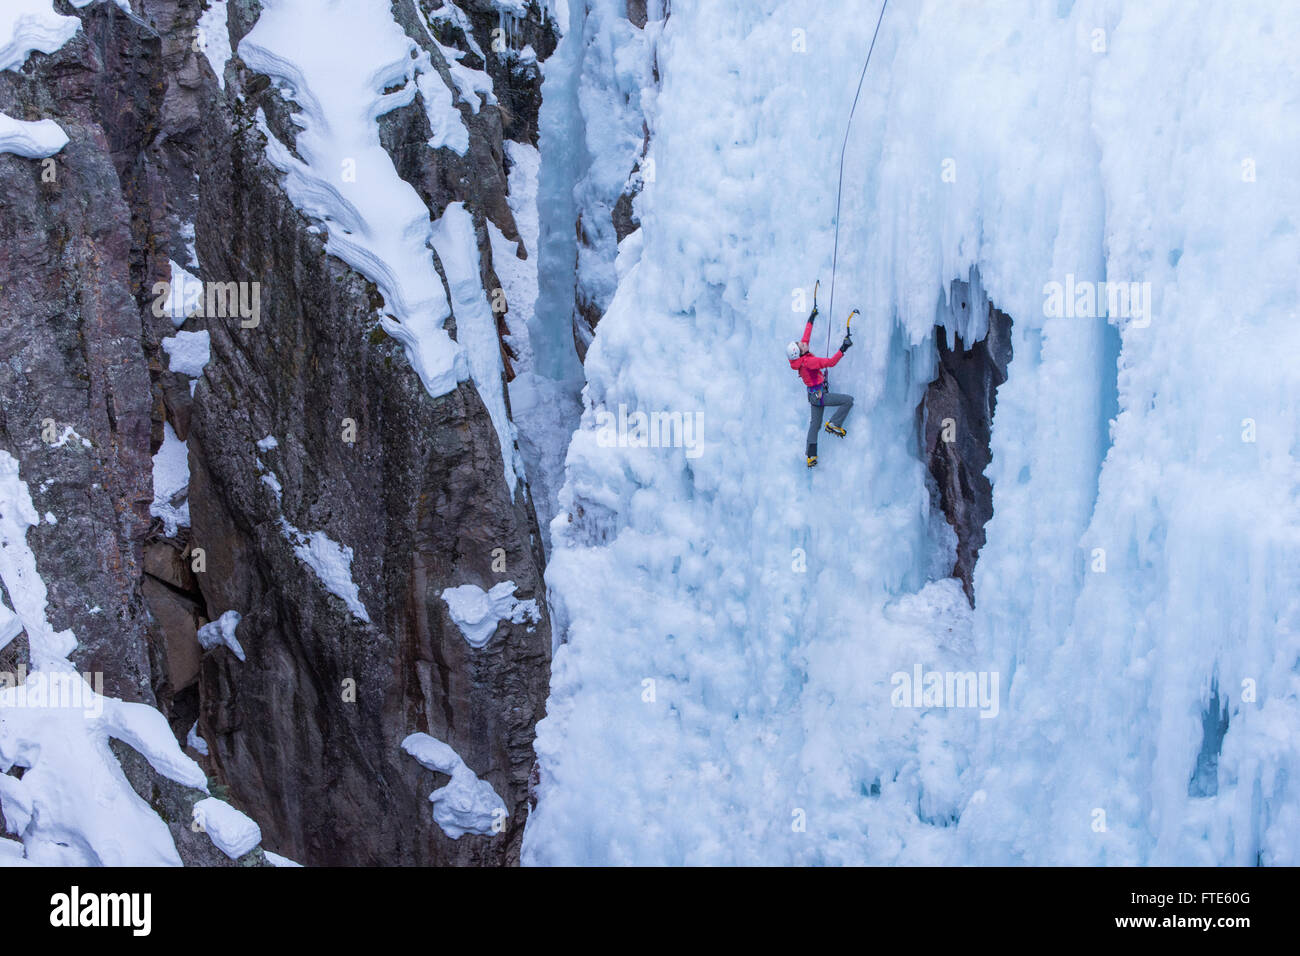 Ice climber escalar una ruta llamada Pick o' Vic, cuyo valor nominal es de WI4 en Ouray Colorado Imagen De Stock